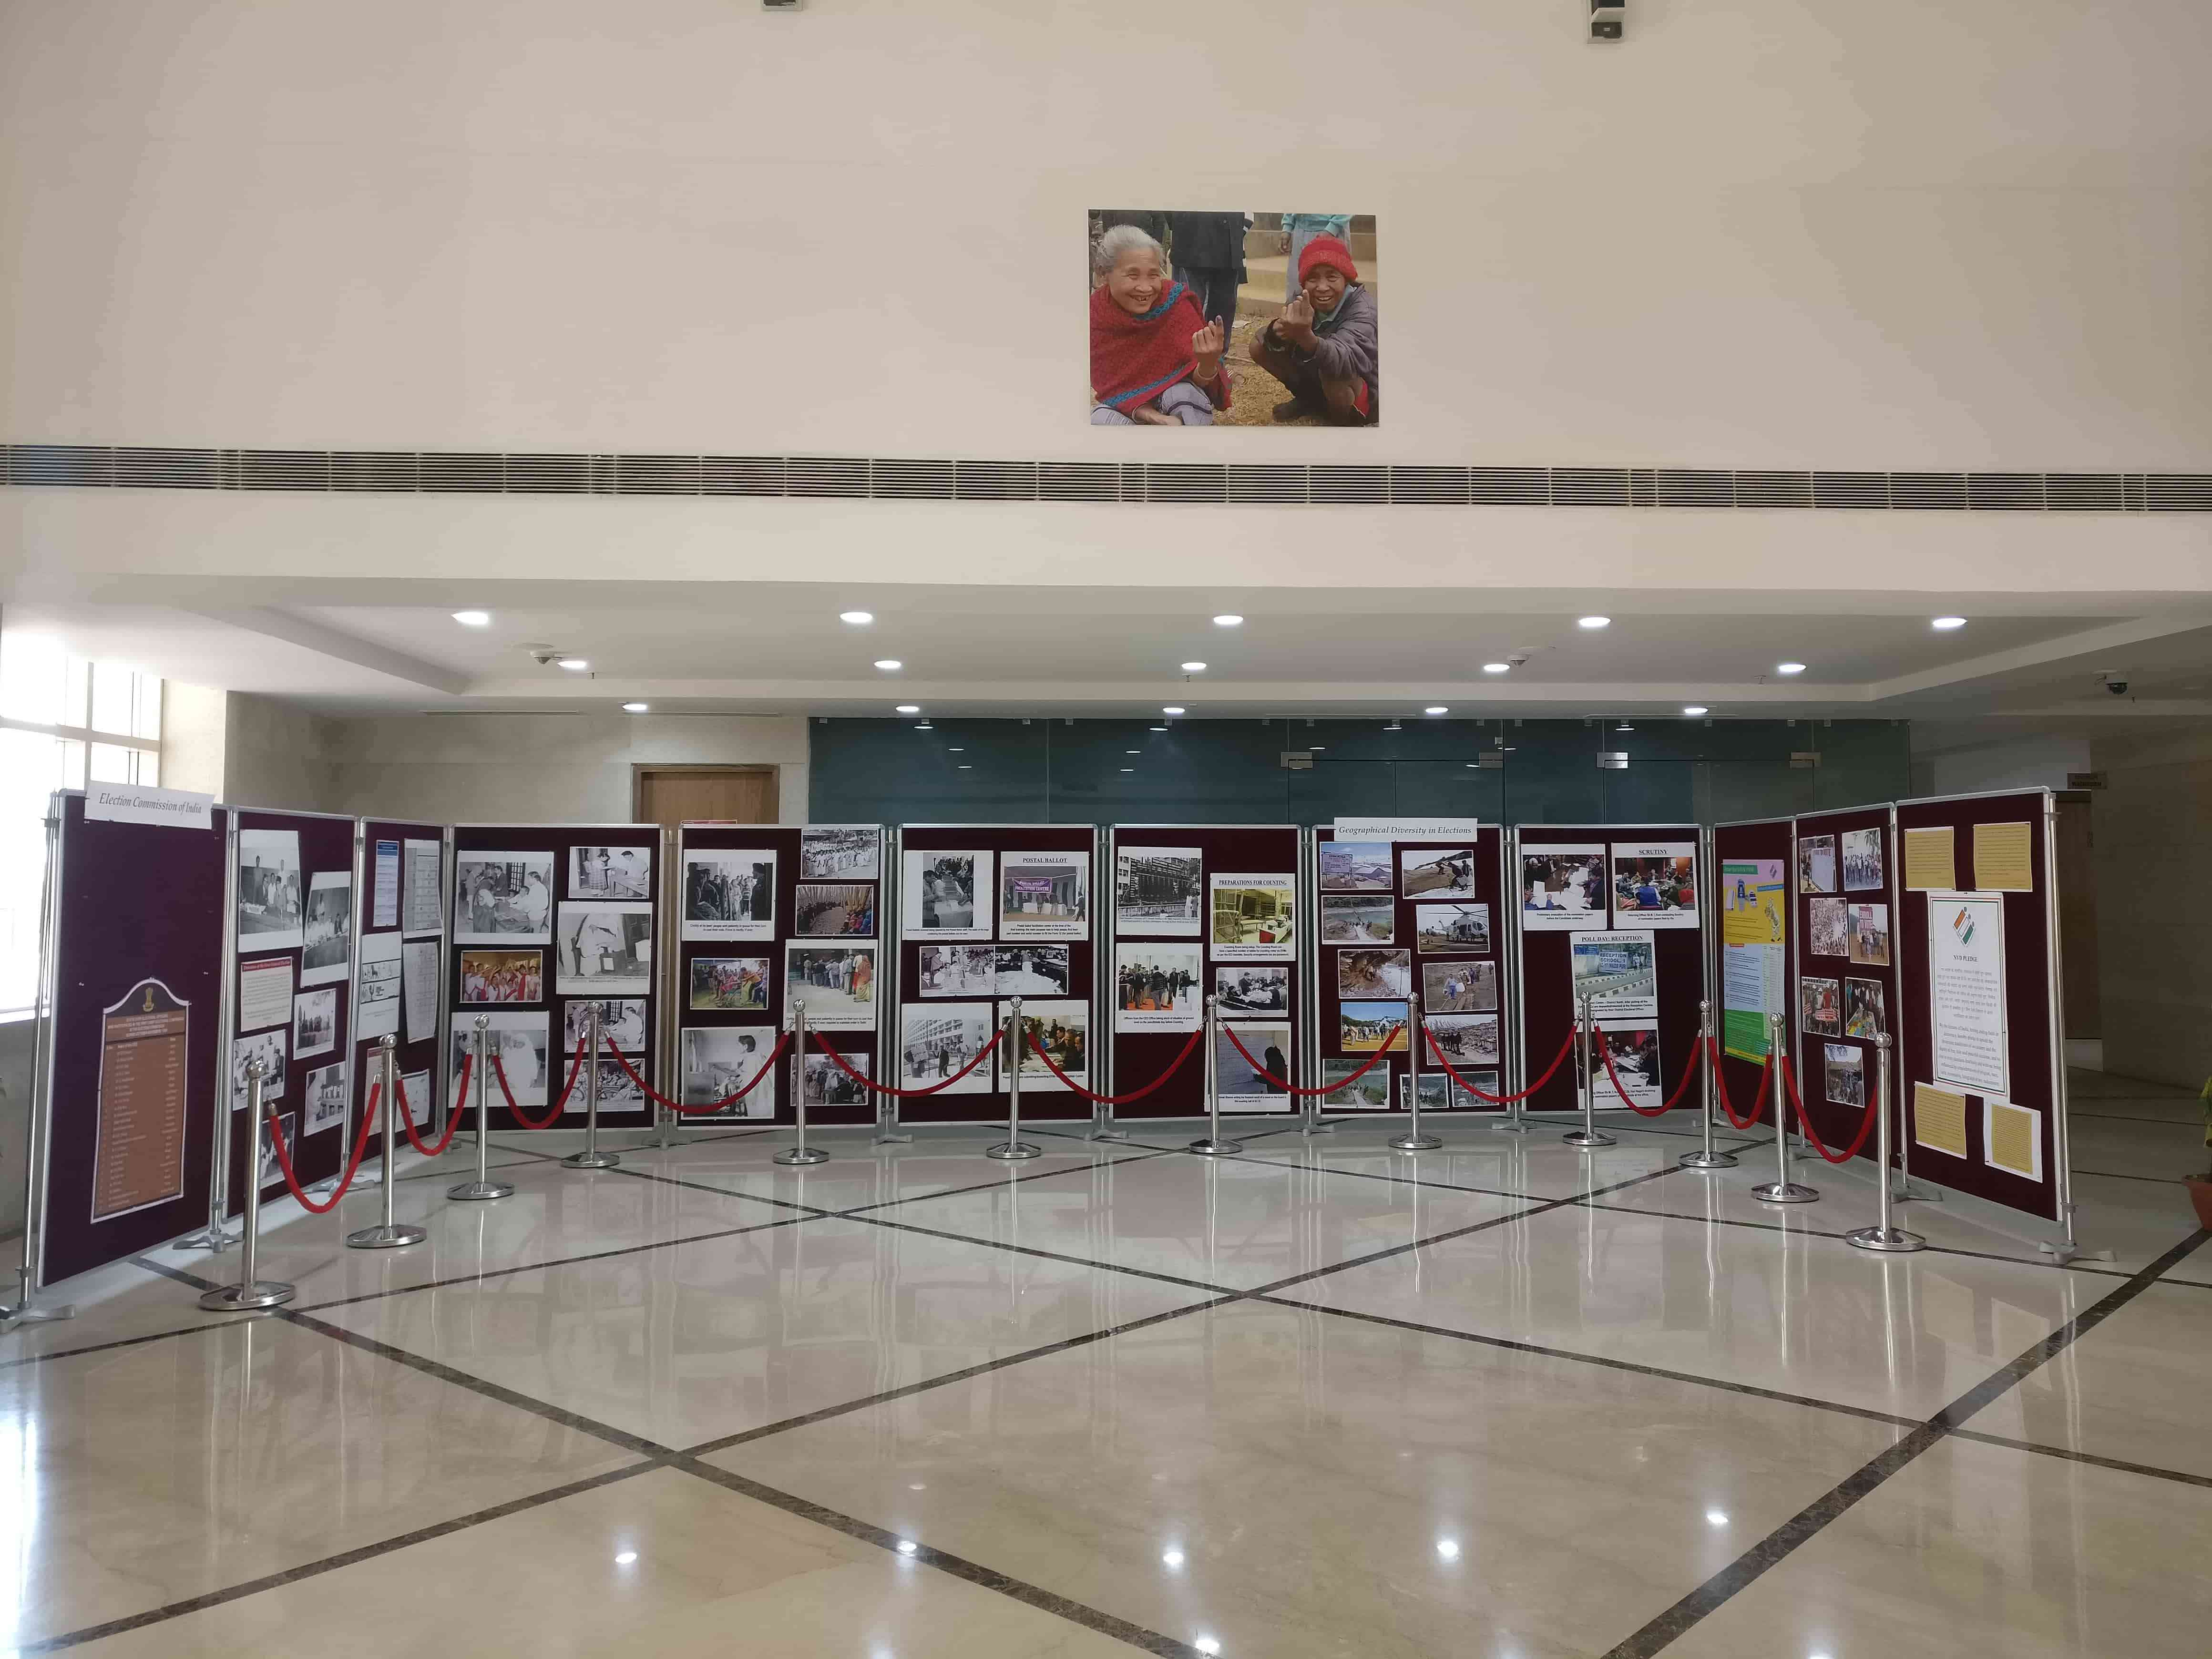 The institute will house the Election Commission of India's museum, but for now it has an exhibition of some documents and photographs. Photo credit: Shreya Roy Chowdhury